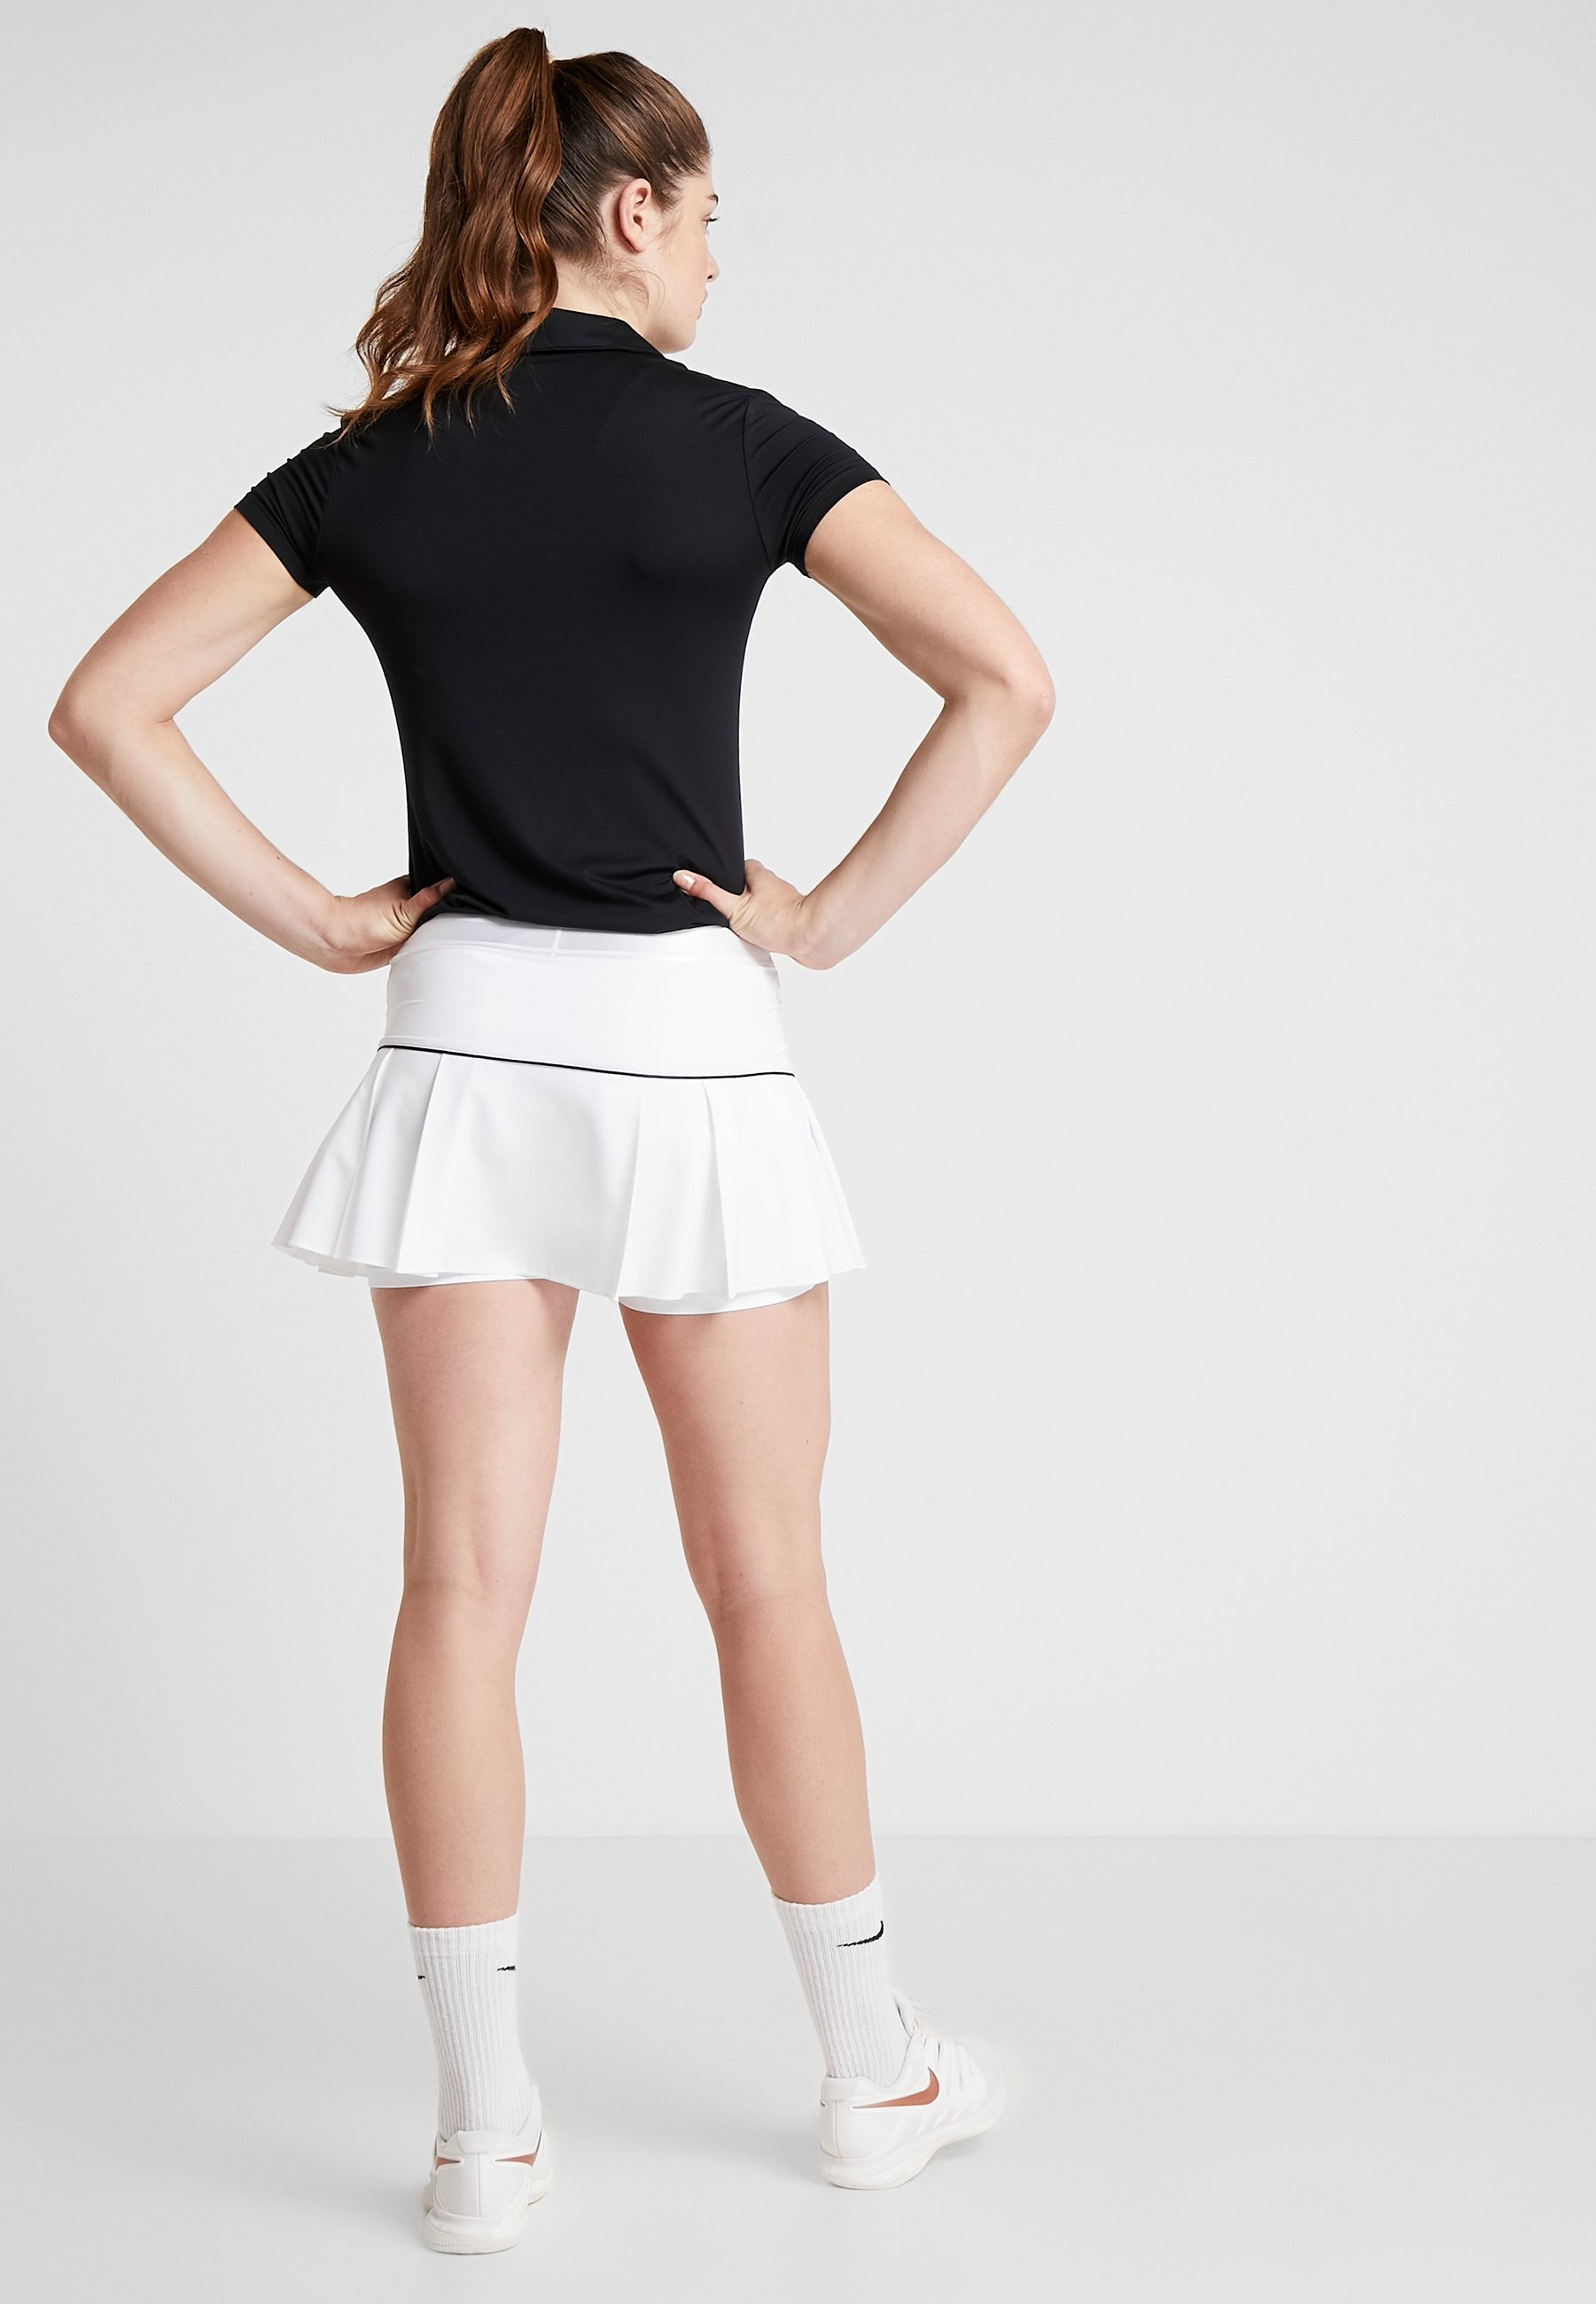 Nike Performance VICTORY SKIRT - Sports skirt - white/black dpcvd